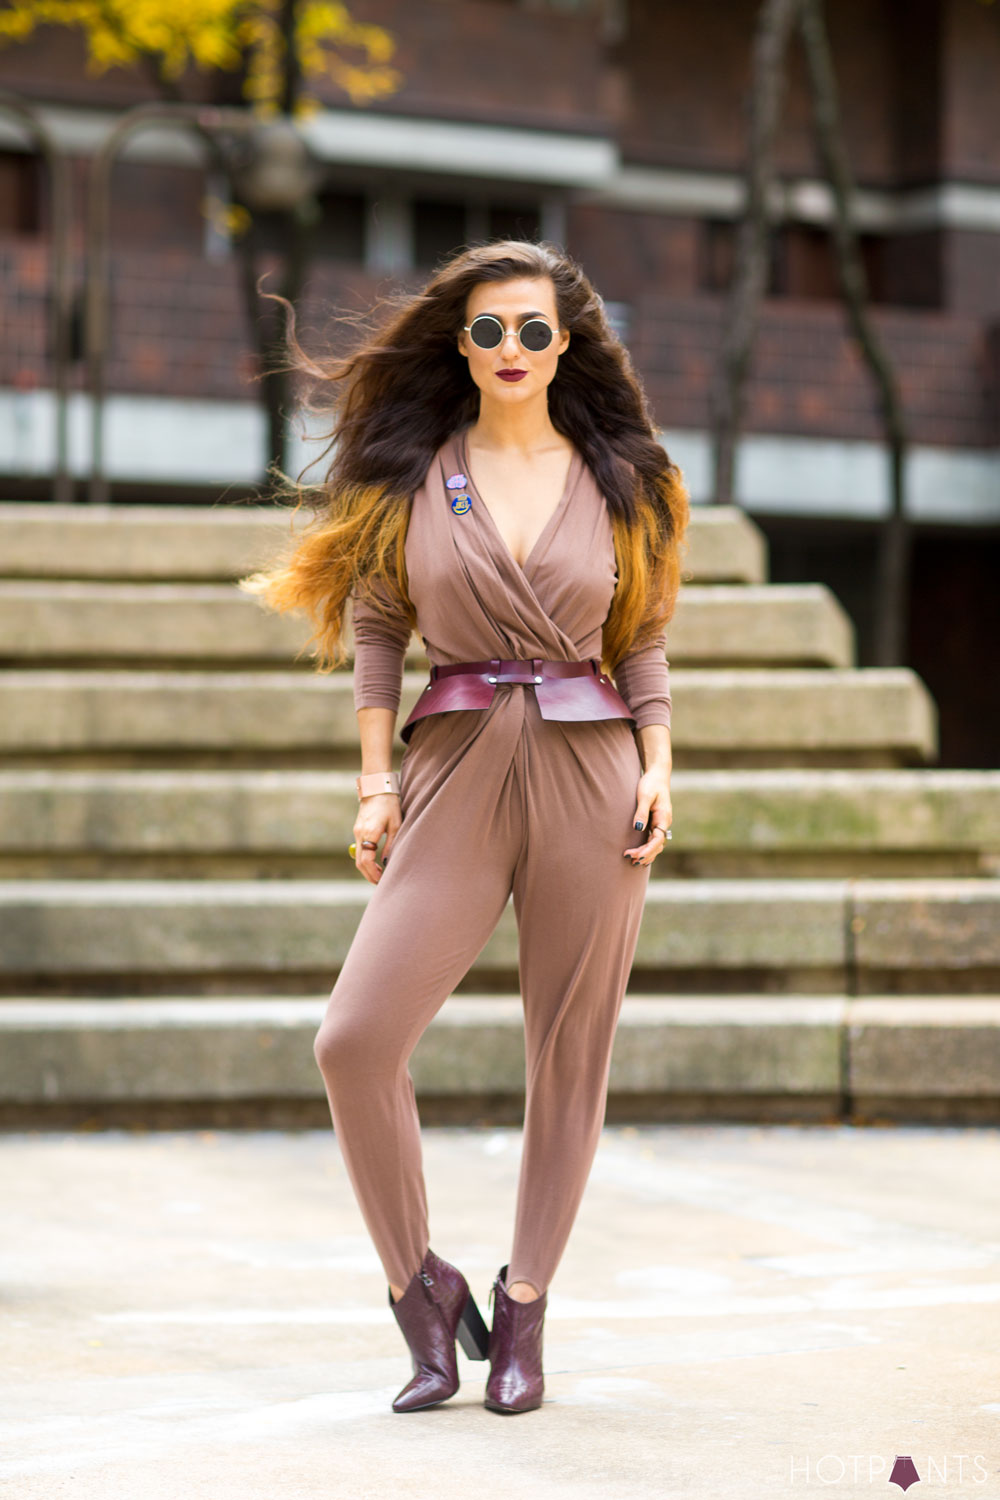 Healthy Girl Woman John Lennon Round Sunglasses Tan Nude Vintage Jumpsuit Ombre Hair